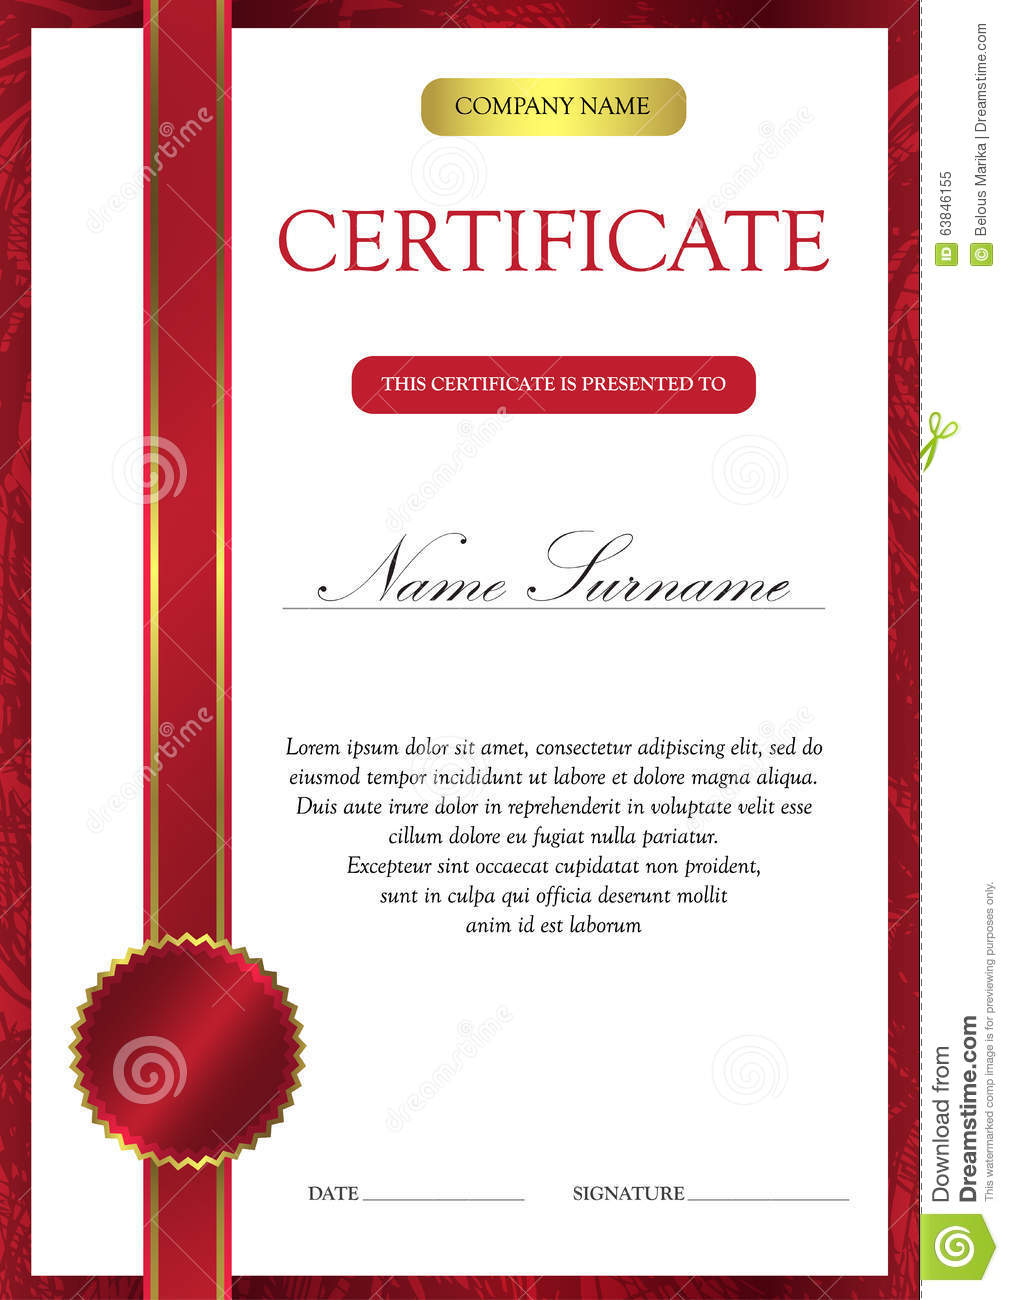 Certificate And Diploma Template Stock Illustration - Image: 63846155